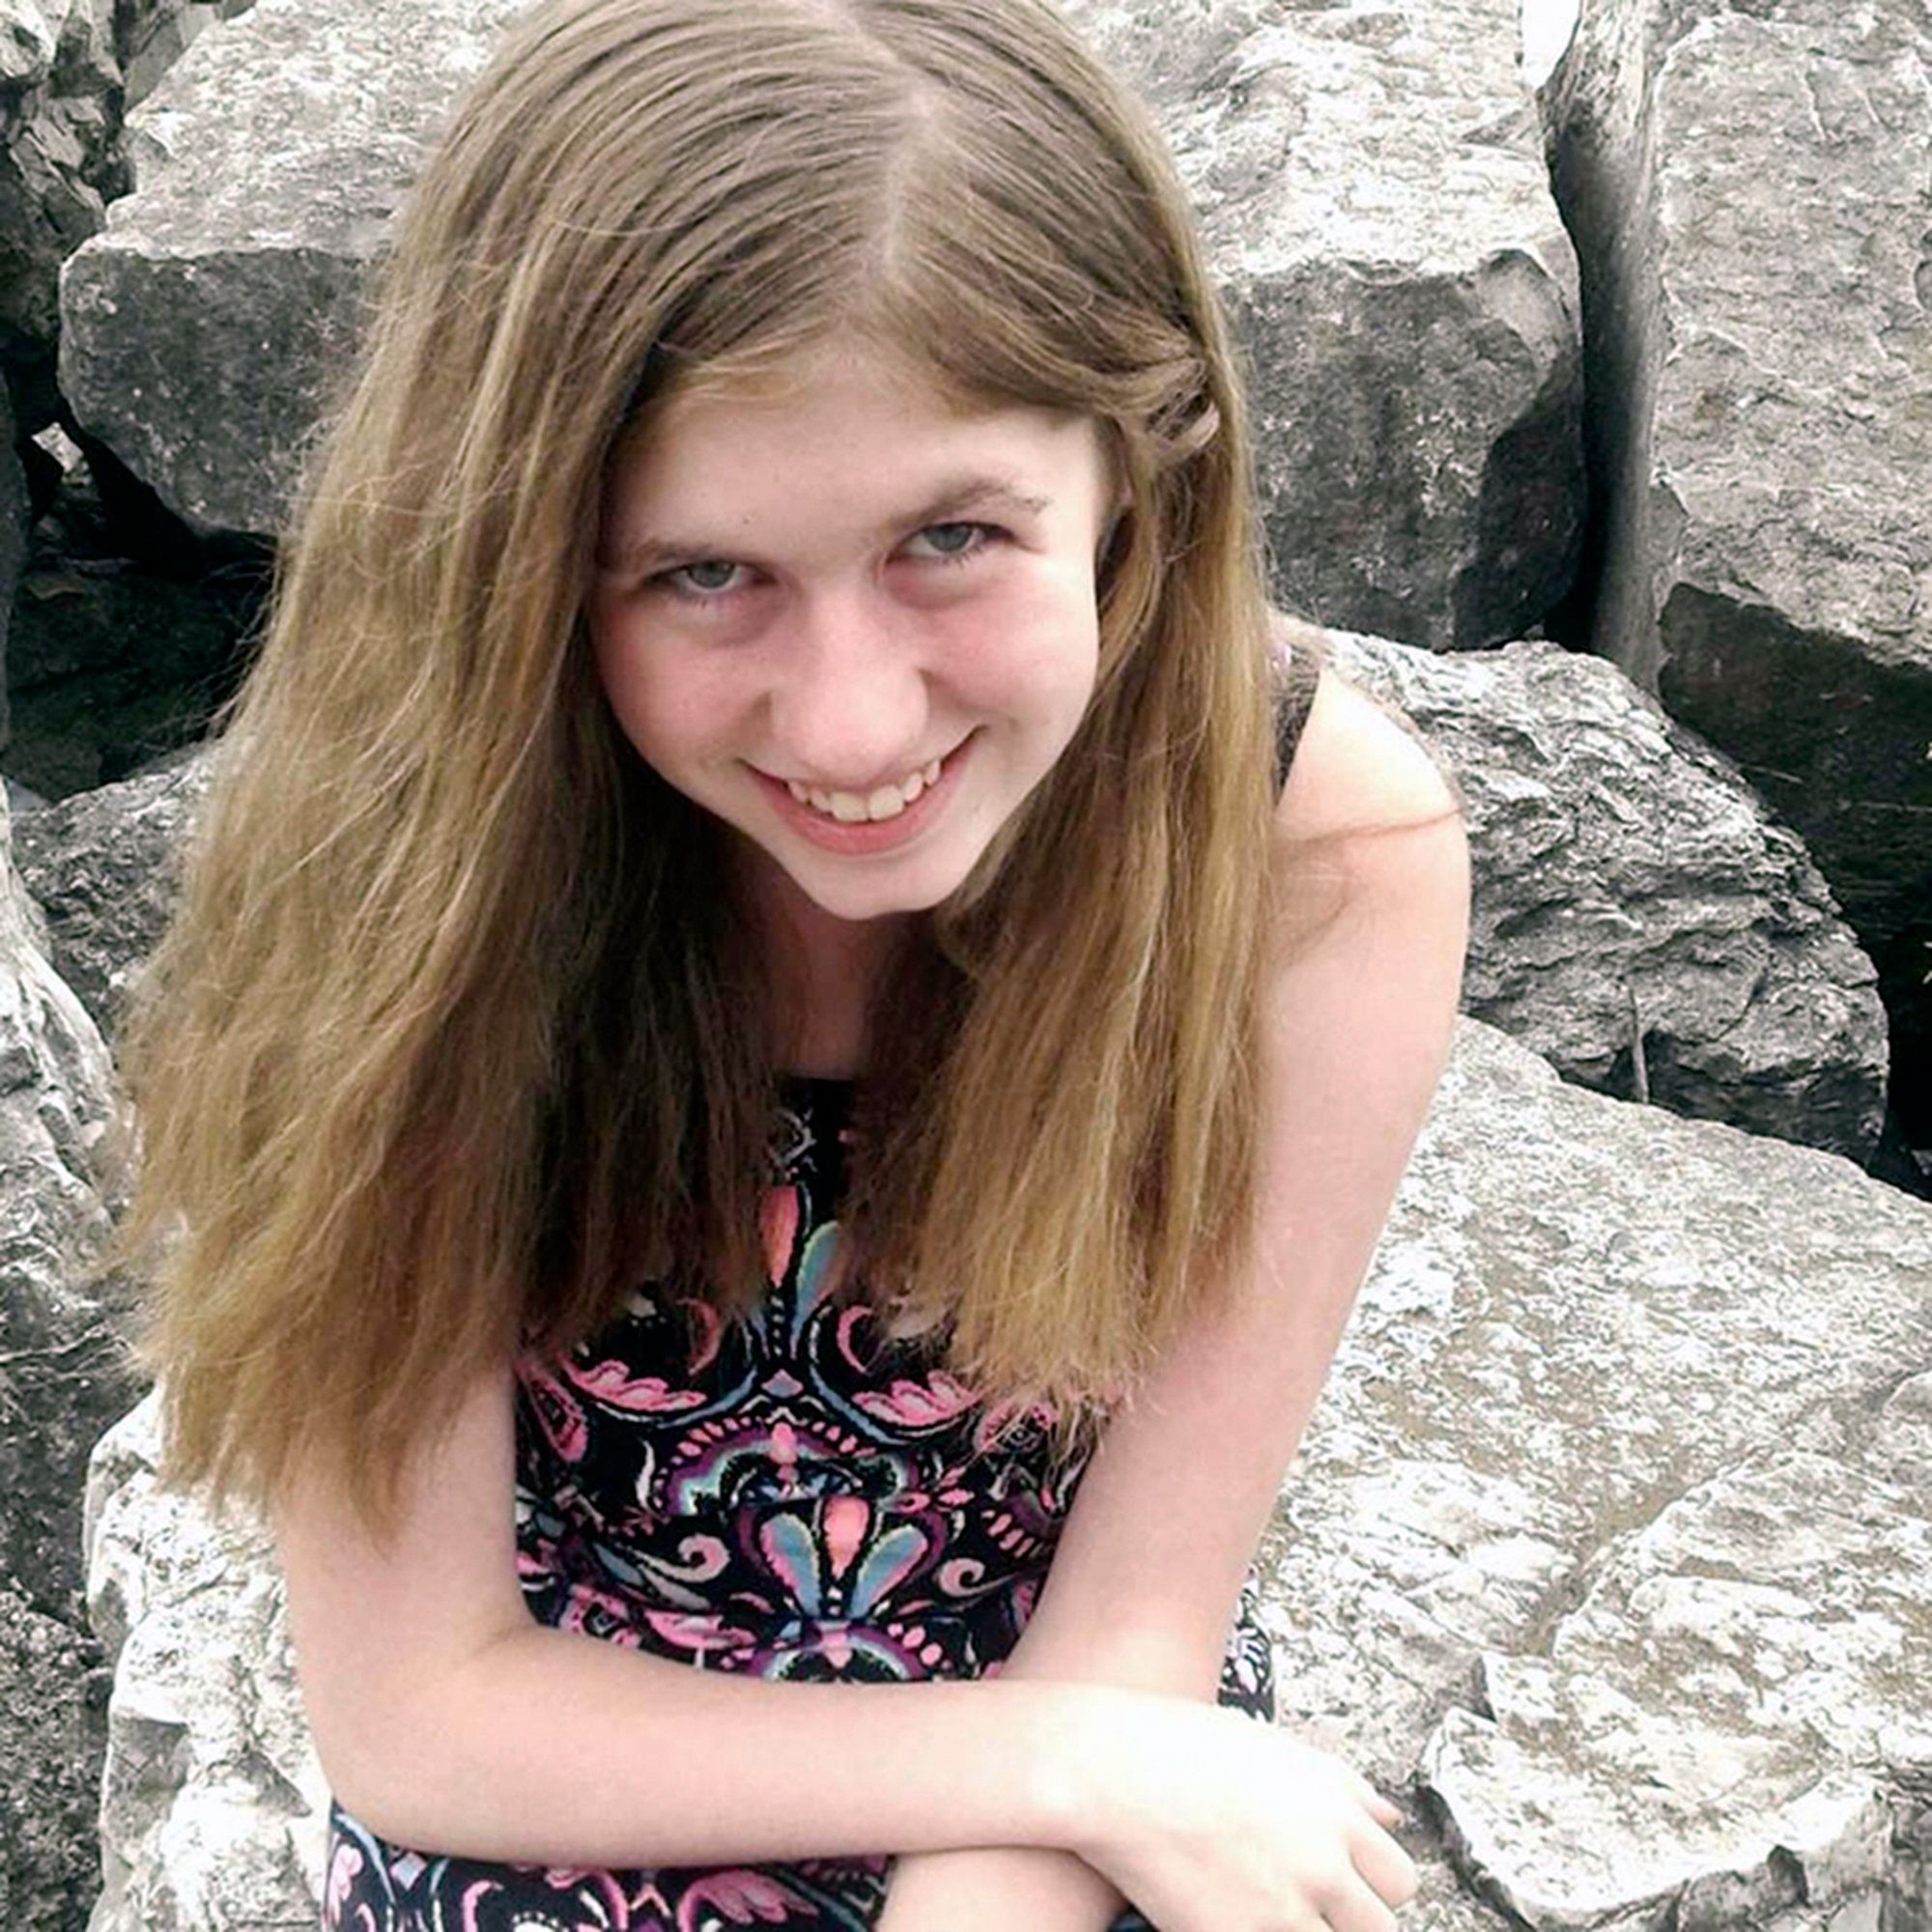 "FILE - This undated file photo provided by Barron County, Wis., Sheriff's Department, shows Jayme Closs, who was discovered missing Oct. 15, 2018, after her parents were found fatally shot at their home in Barron, Wis. People turned out in the city of Barron on Wednesday, Dec. 12 to light up a ""tree of hope"" in honor of the missing Closs. Detectives have pursued thousands of tips, watched dozens of surveillance videos and spent countless hours searching for Jayme, but their efforts haven't yielded any suspects. (Courtesy of Barron County Sheriff's Department via AP, File)"